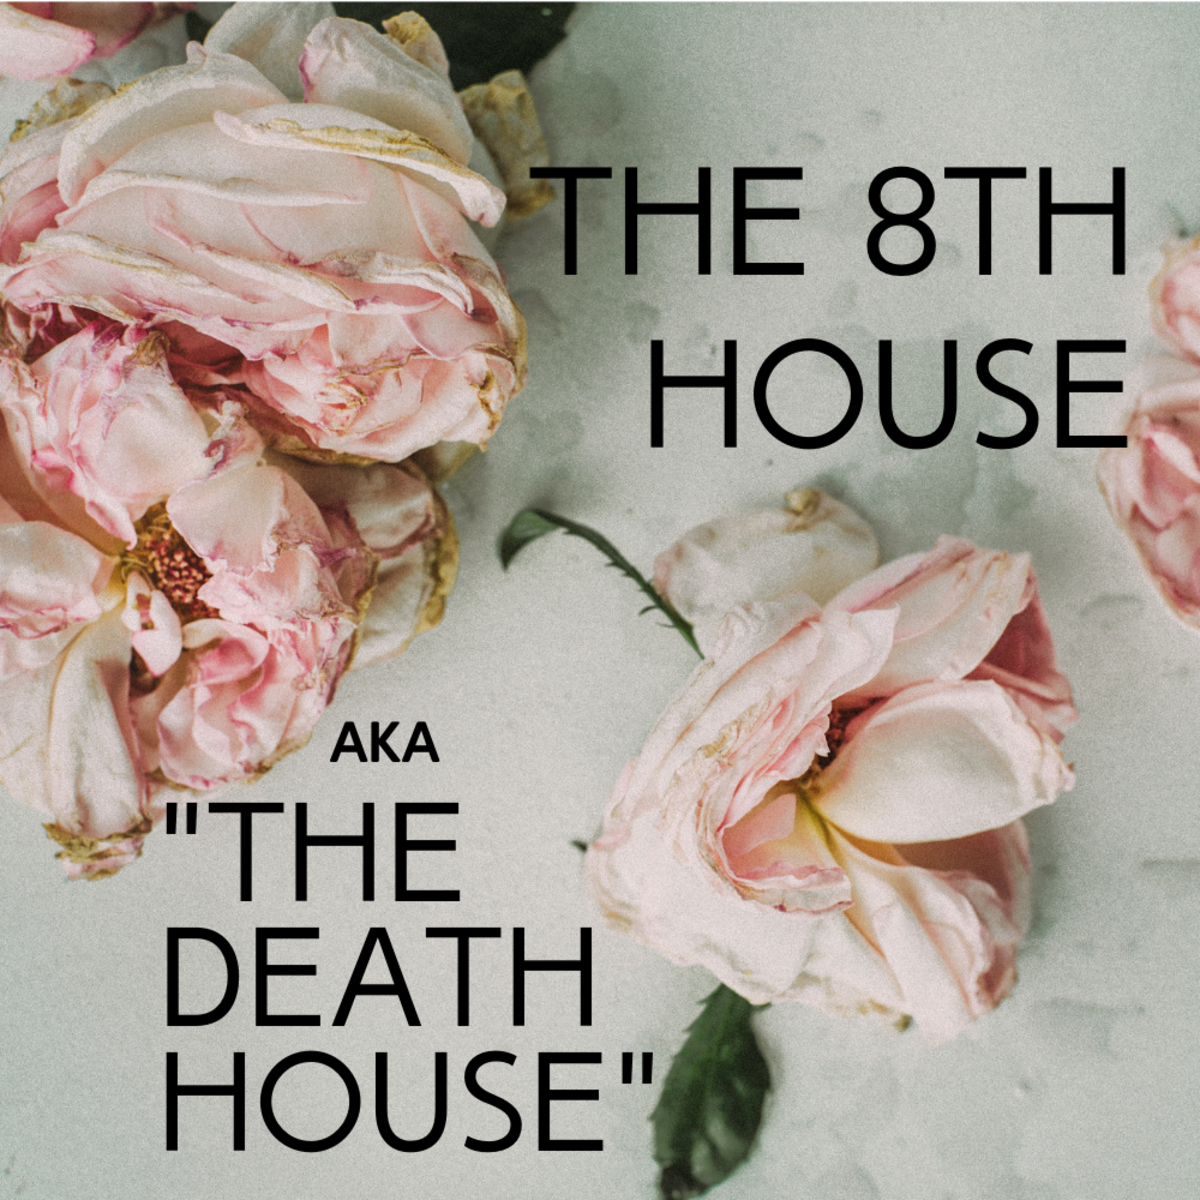 Are you in the 8th House, aka Death House? Find out what that means for you.